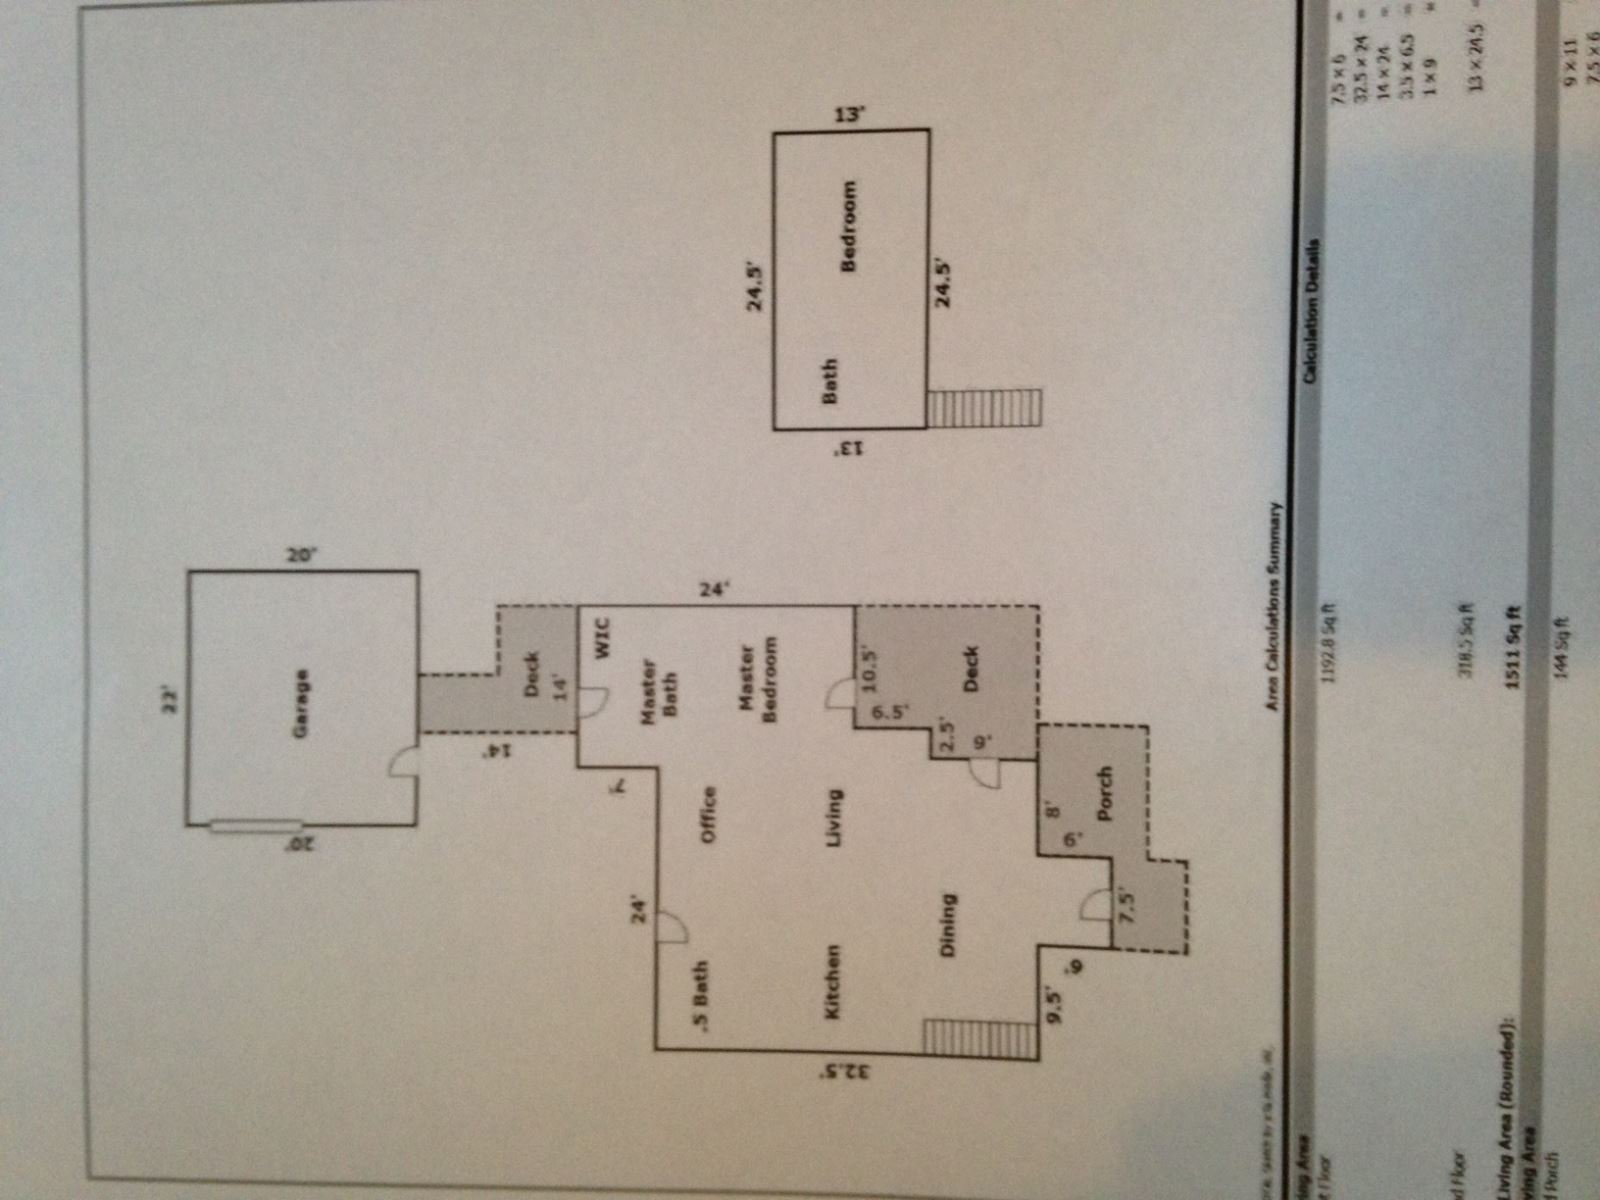 Floor Plan for Downtown Pet Friendly Bend Oregon Vacation Rental Hot Tub Fenced Yard Sleeps 5 Air Conditioner